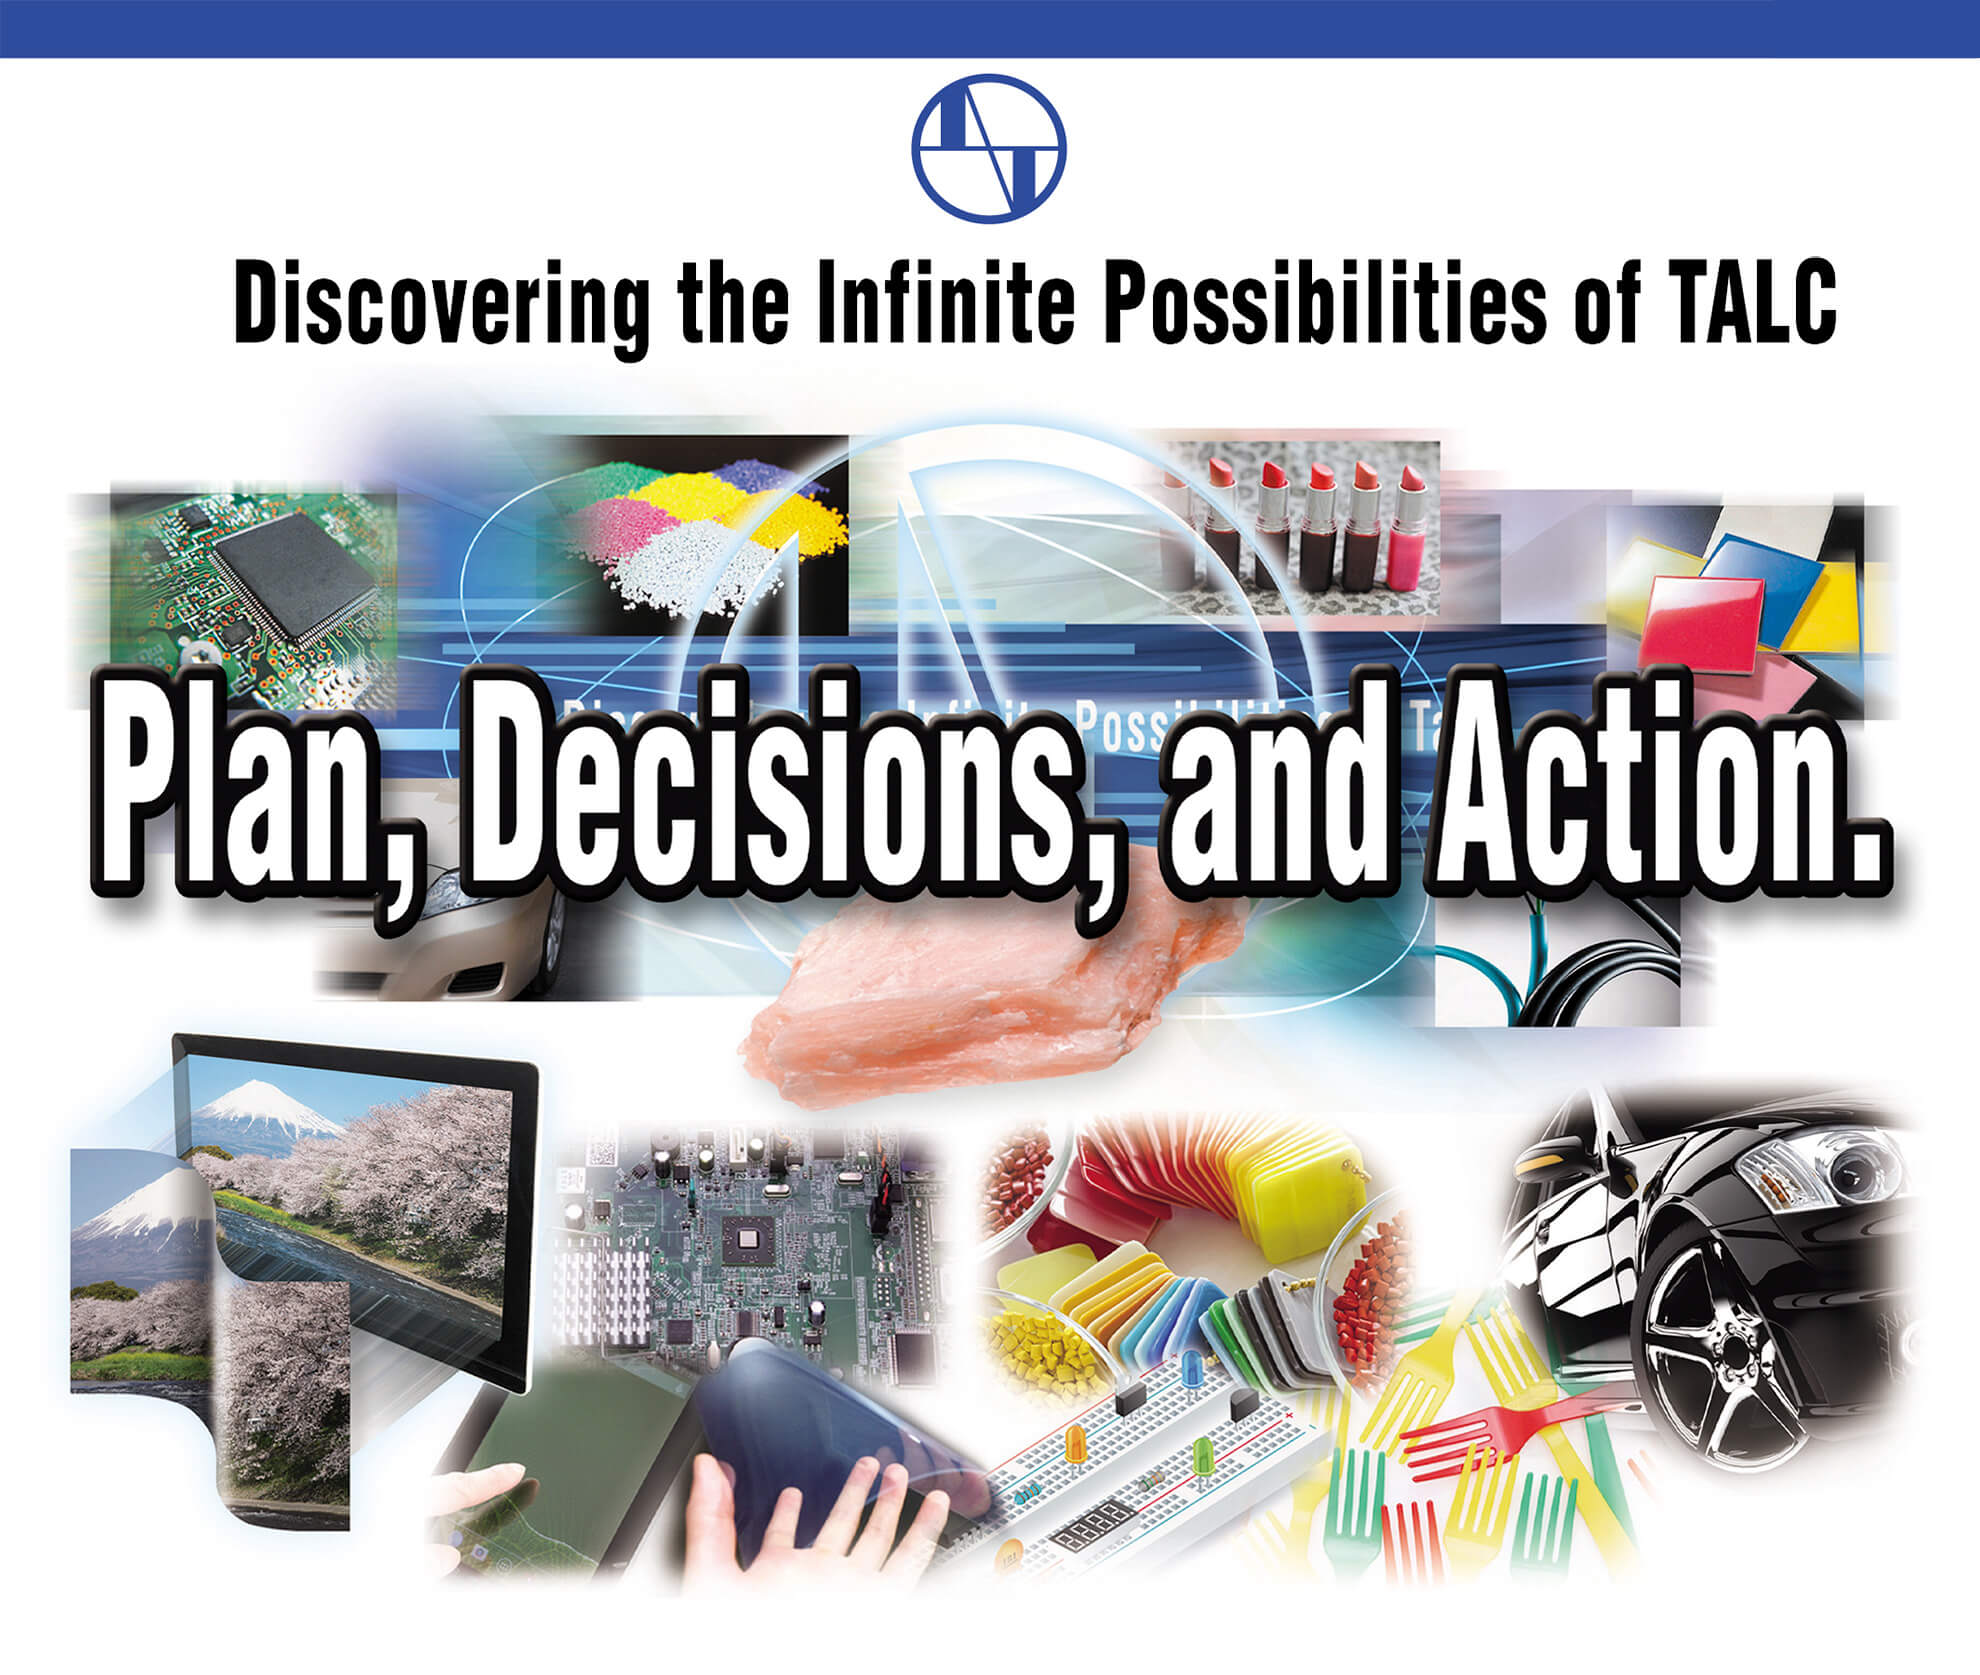 Discovering the Infinite Possibilities of TALC - Appeal our products more and further